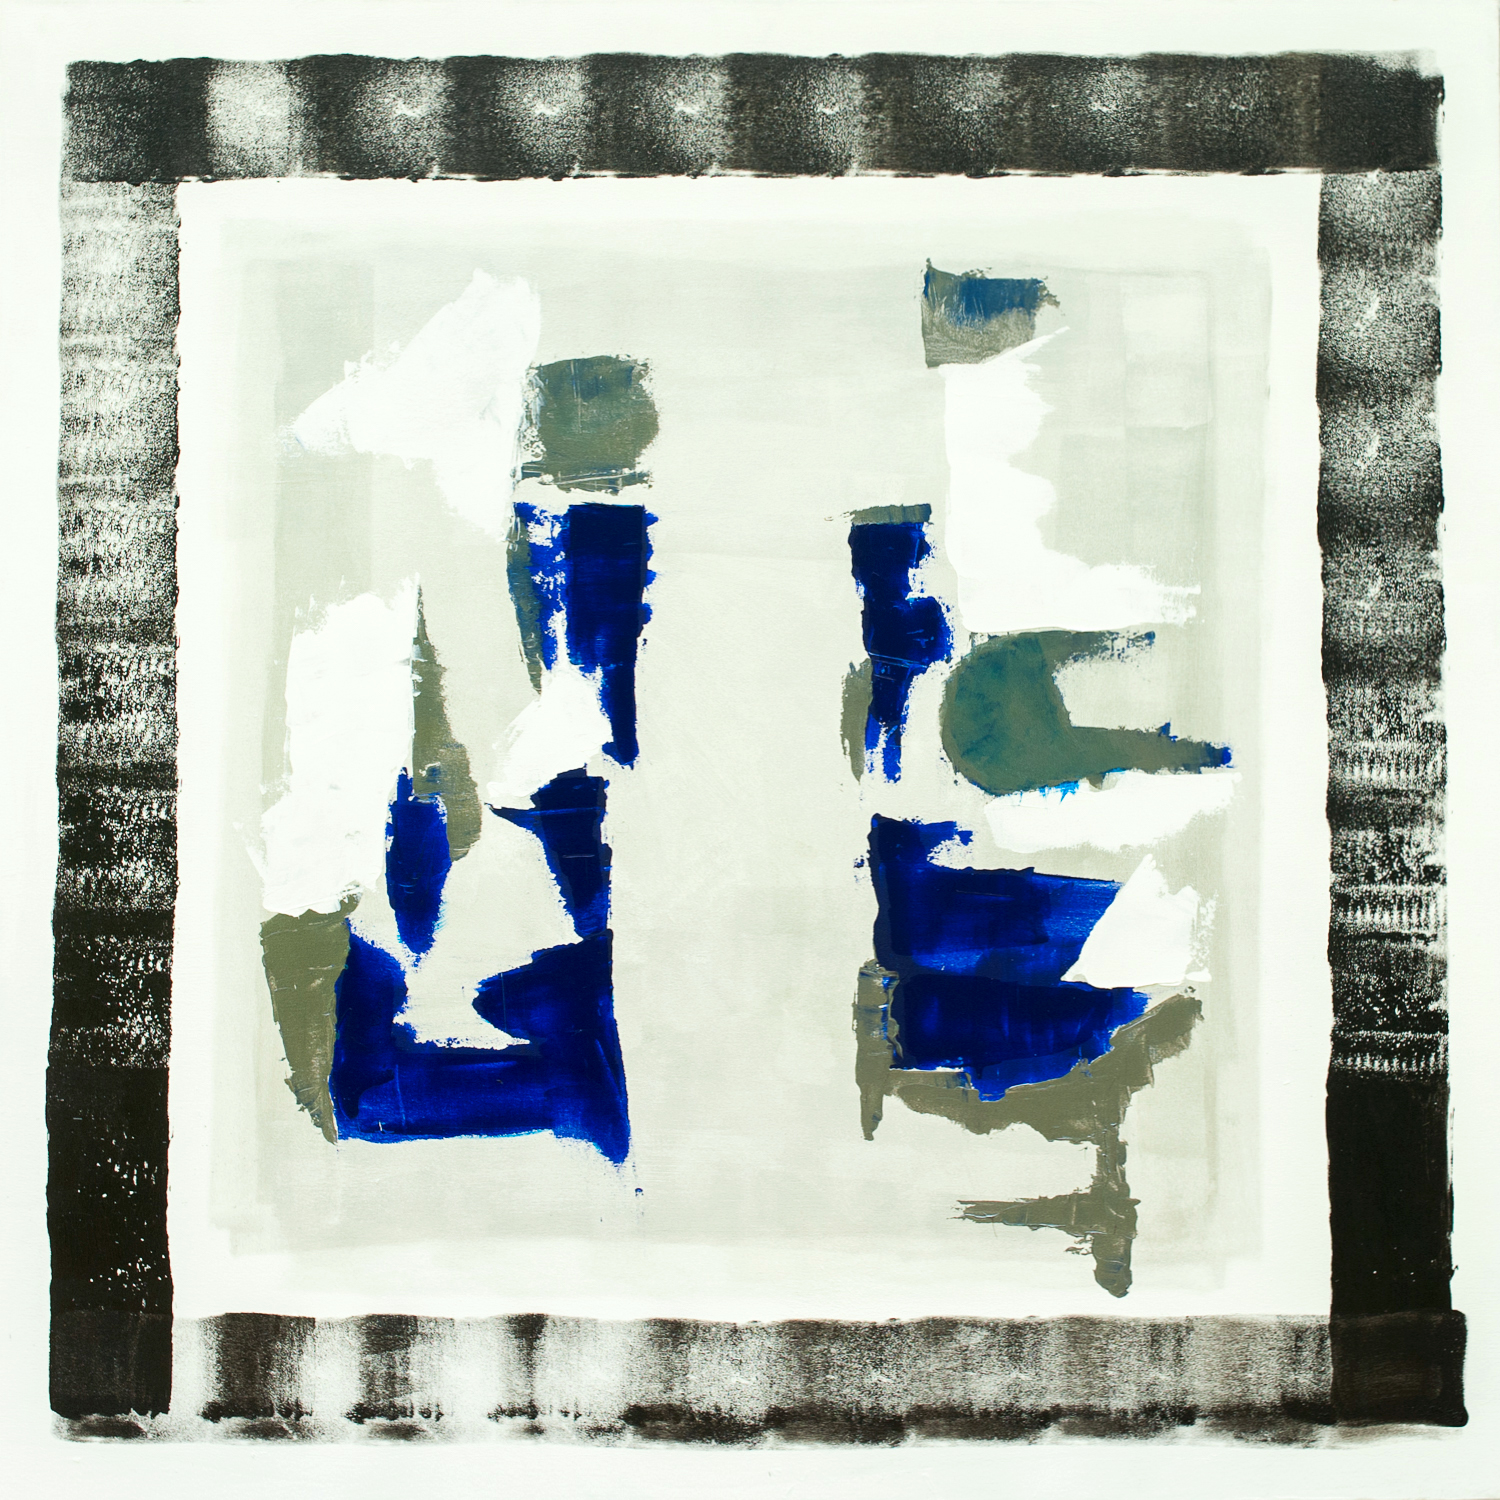 Square 1 BLUEoW 48x48 in